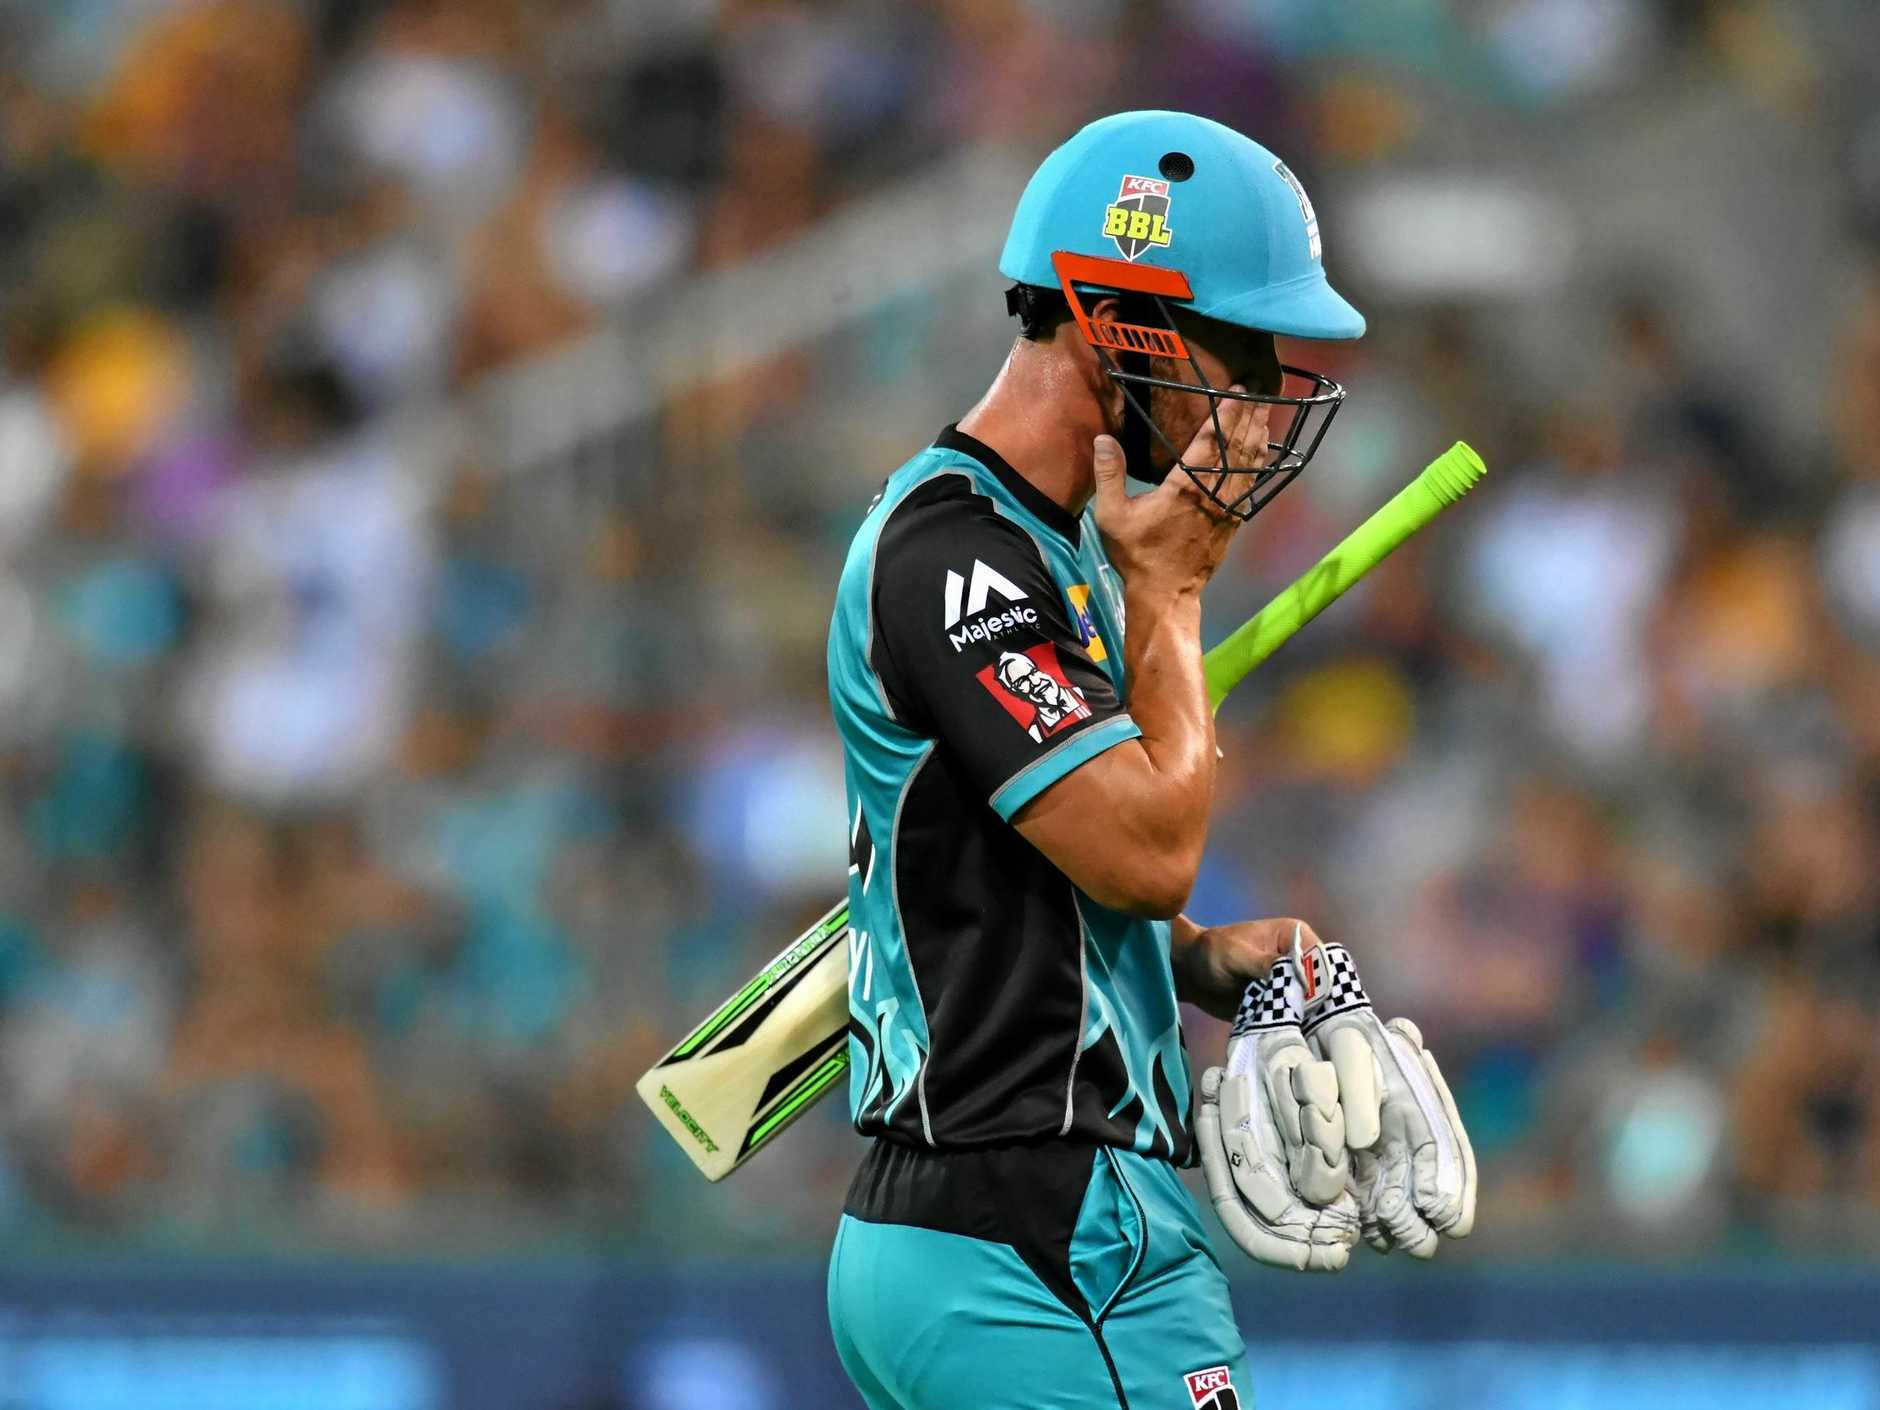 Chris Lynn of the Heat walks off the field after losing his wicket to Shane Watson of the Thunder during the Big Bash League (BBL) cricket match between the Brisbane Heat and the Sydney Thunder at the Gabba in Brisbane, Wednesday, December 27, 2017. (AAP Image/Darren England) NO ARCHIVING, EDITORIAL USE ONLY